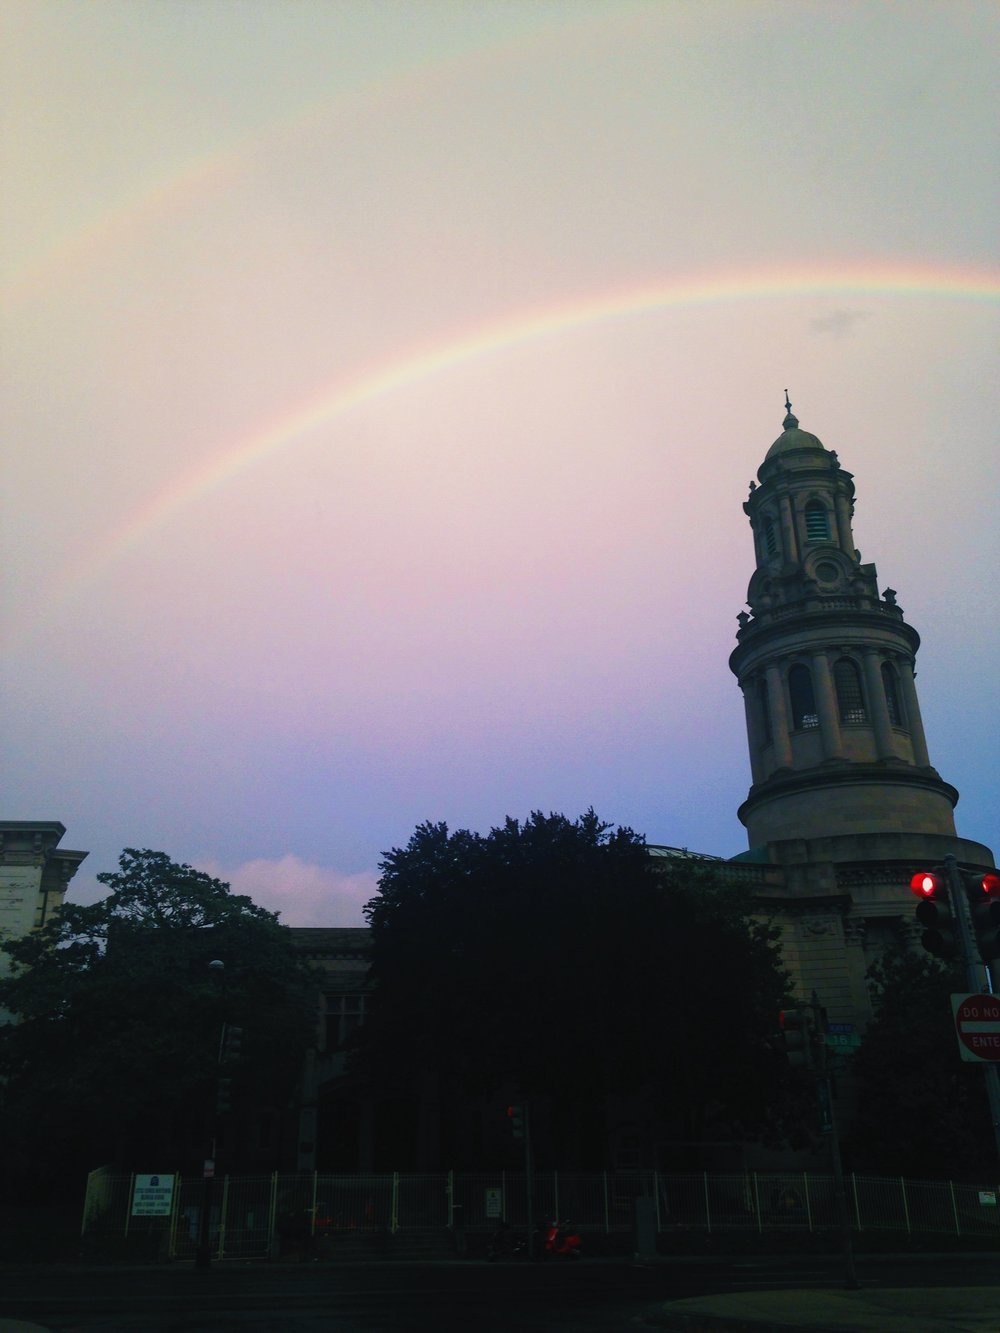 Pride month arrives in D.C. © E.A. Crunden